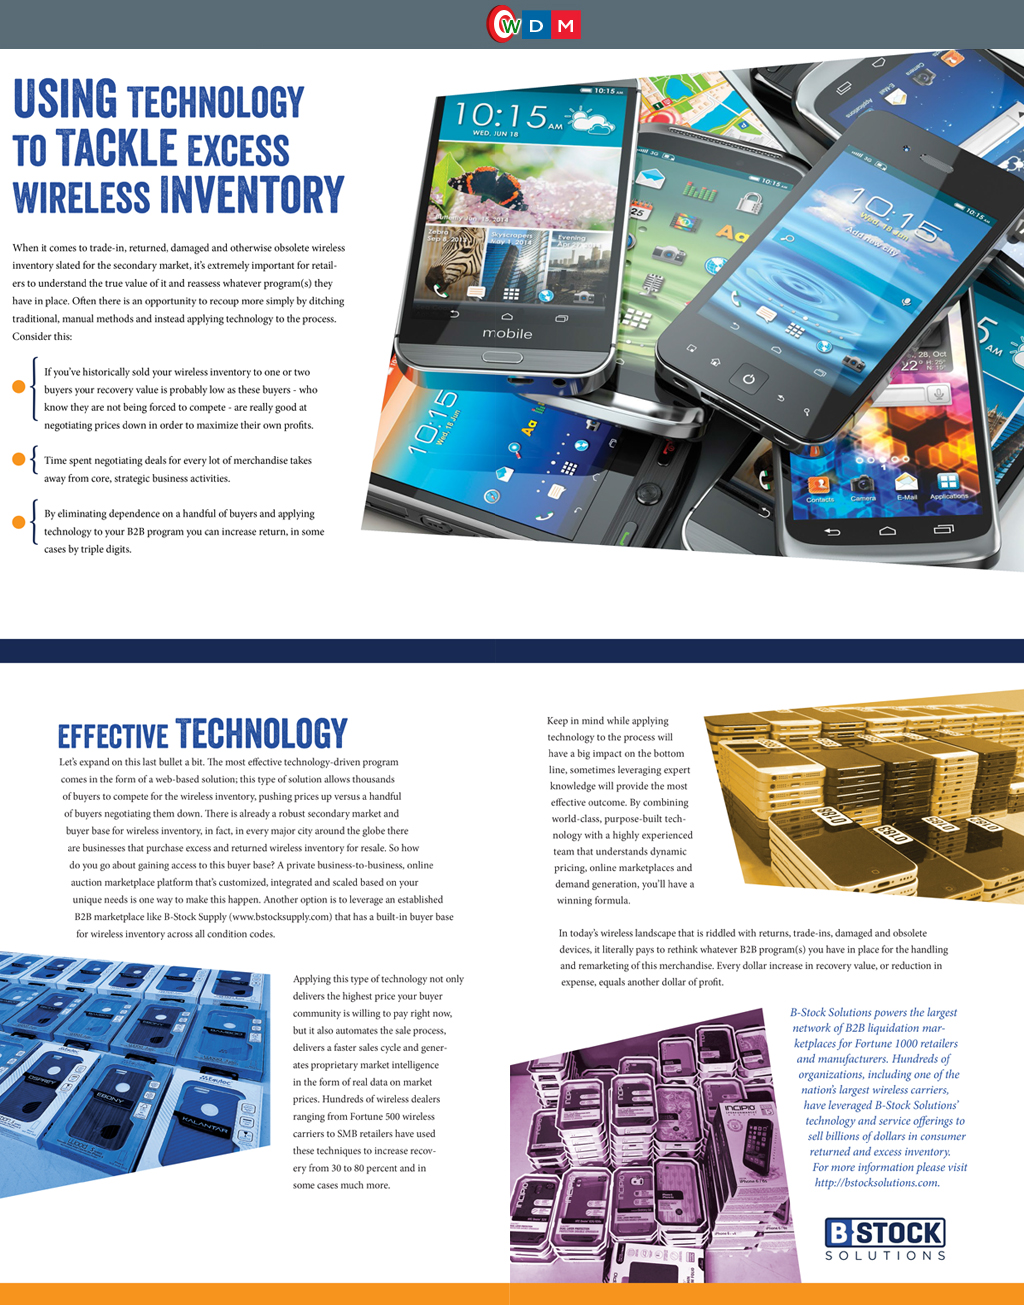 Using Technology to Tackle Excess Wireless Inventory